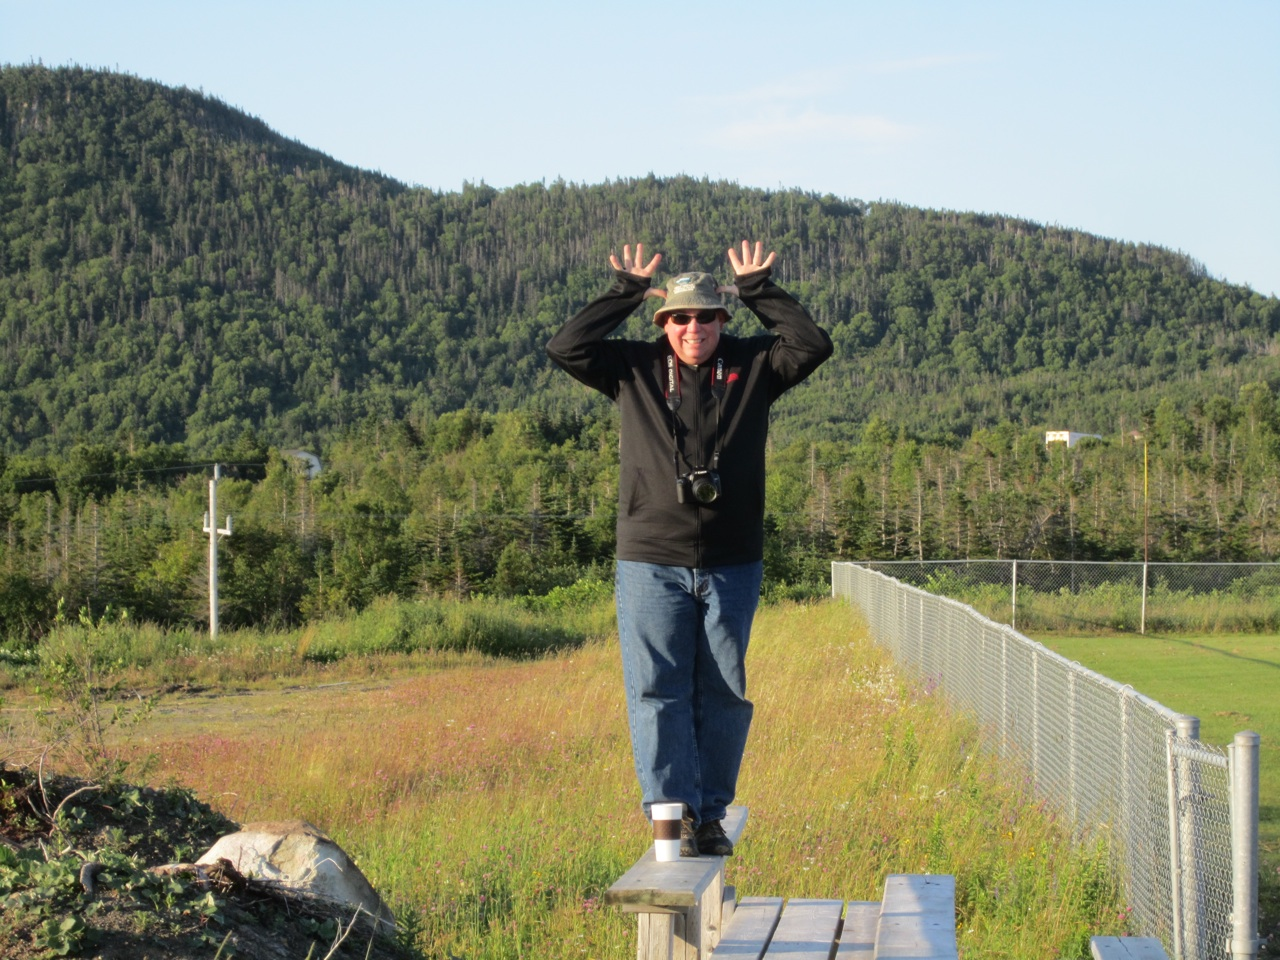 David Trying To Cheer Me Up By Pretending To Be A Moose, Since We Haven't Seen One Yet.